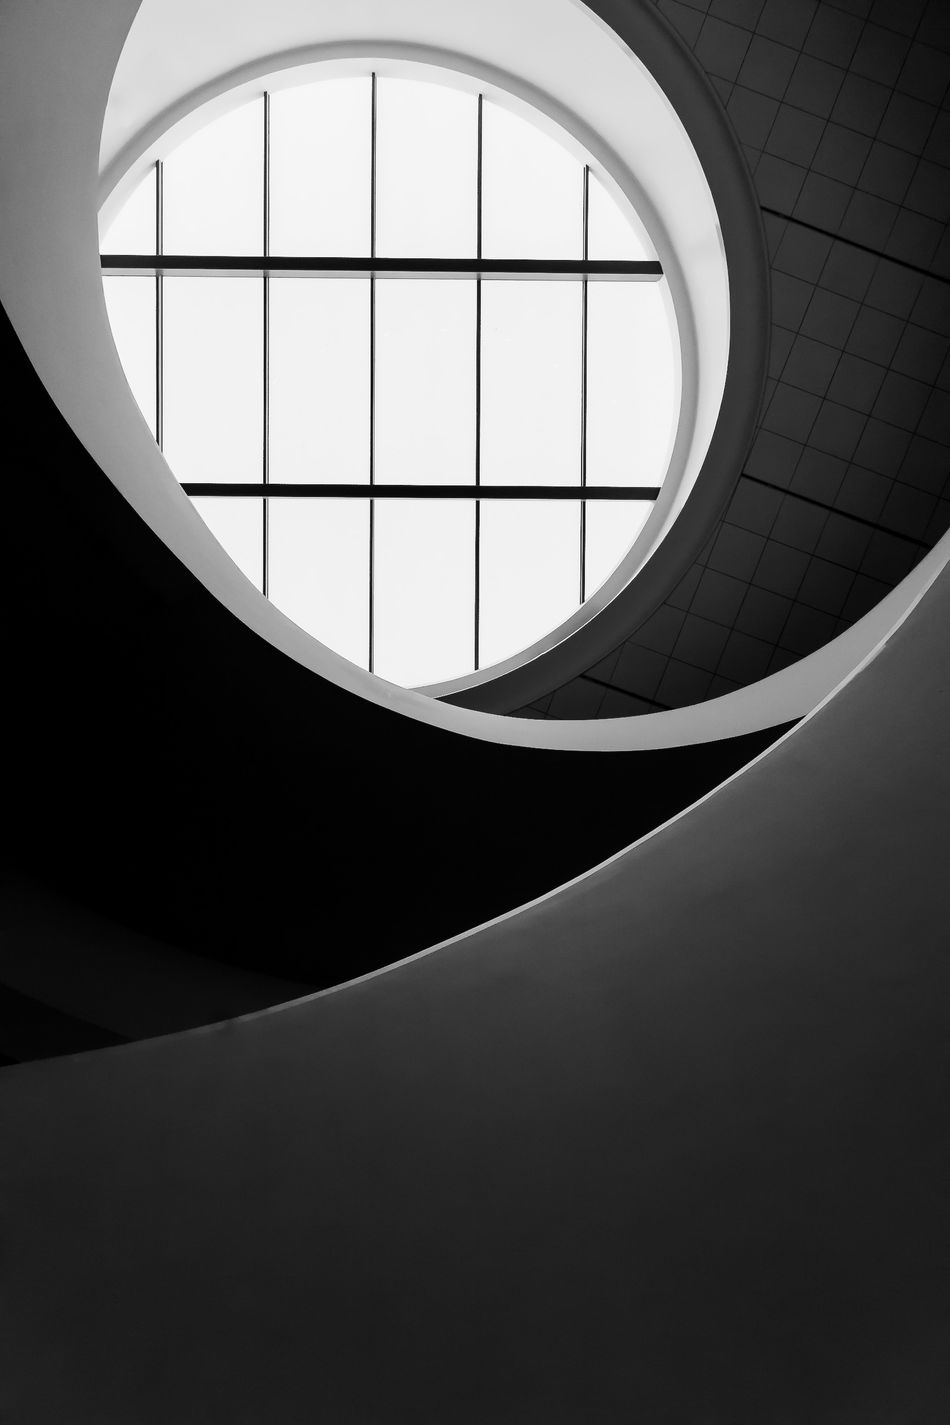 Architecture Black & White Blackandwhite Blackandwhite Photography Built Structure Circle Close-up Day Indoors  Low Angle View Minimal Minimalism Minimalism Photography Minimalism_bw Minimalist Minimalist Architecture Minimalist Photography  Minimalistic Modern No People Semi-circle Spiral Staircase Staircase Steps And Staircases Window Art Is Everywhere